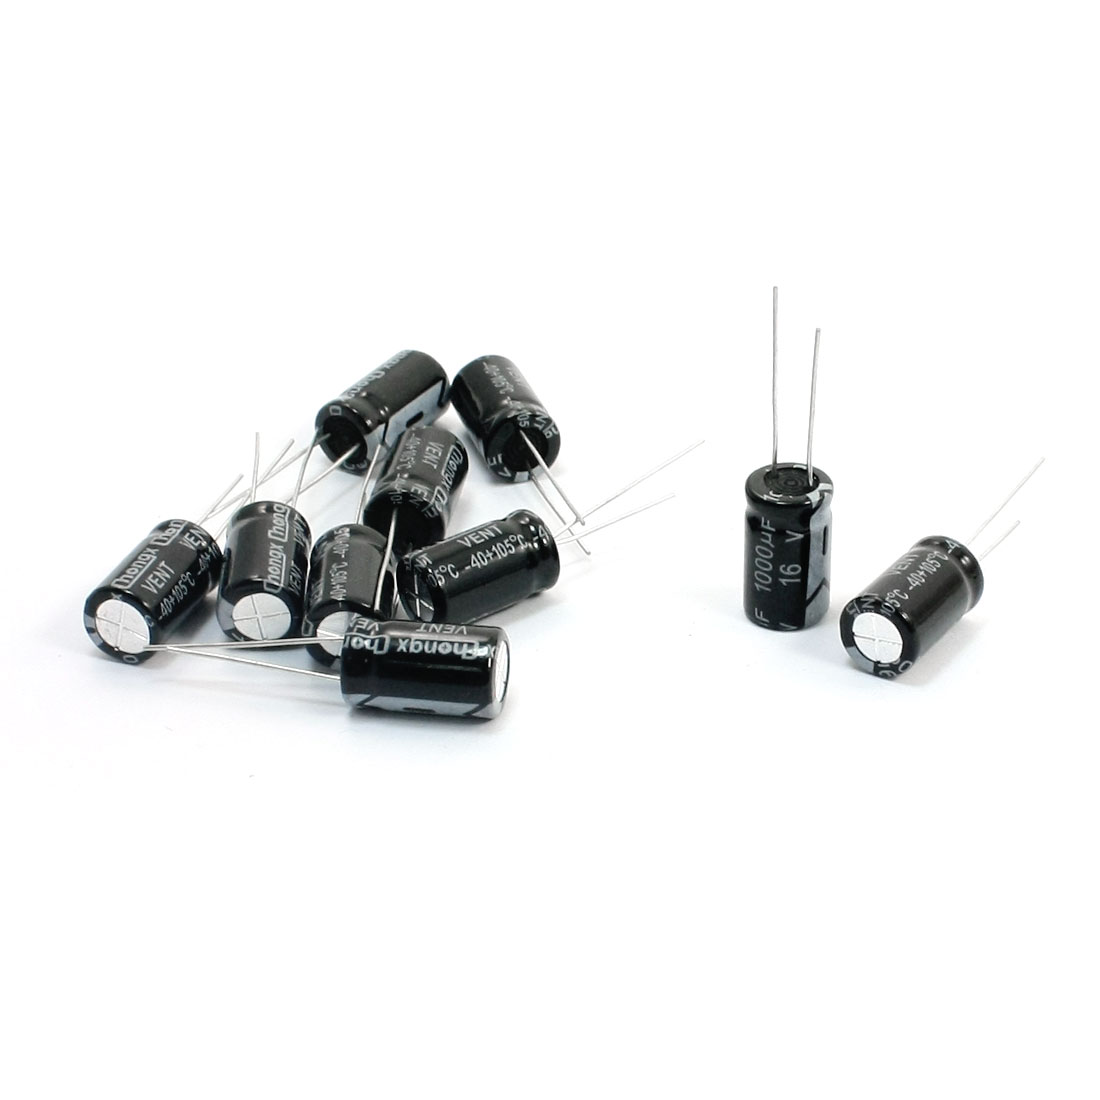 10pcs 17mm x 10mm 4mm Lead Pitch 1000uF 16V Electrolytic Capacitors